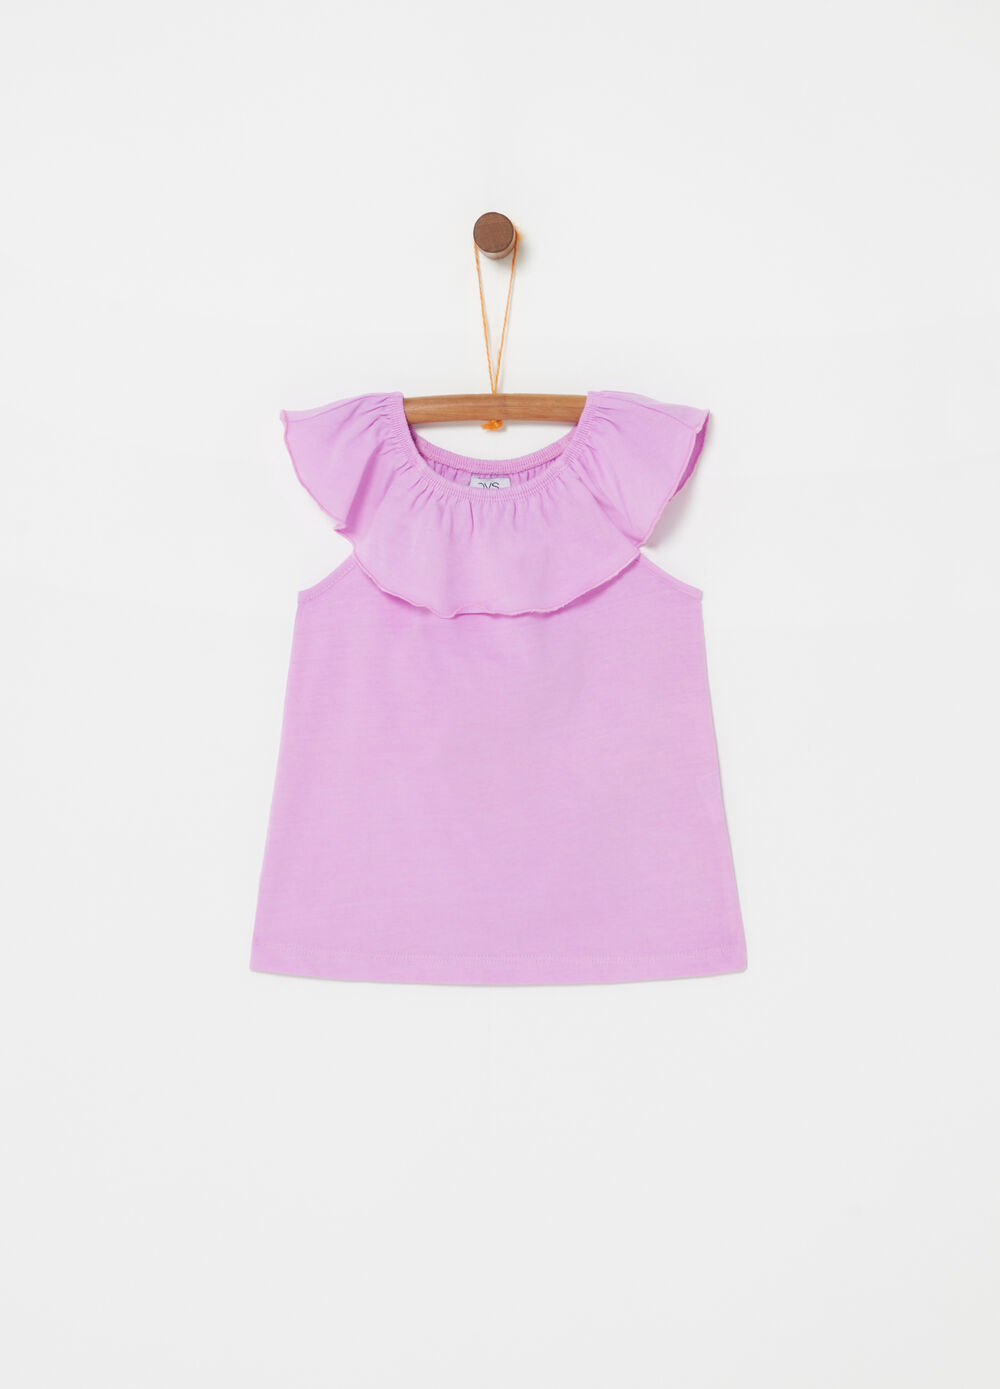 100% cotton tank top with frills